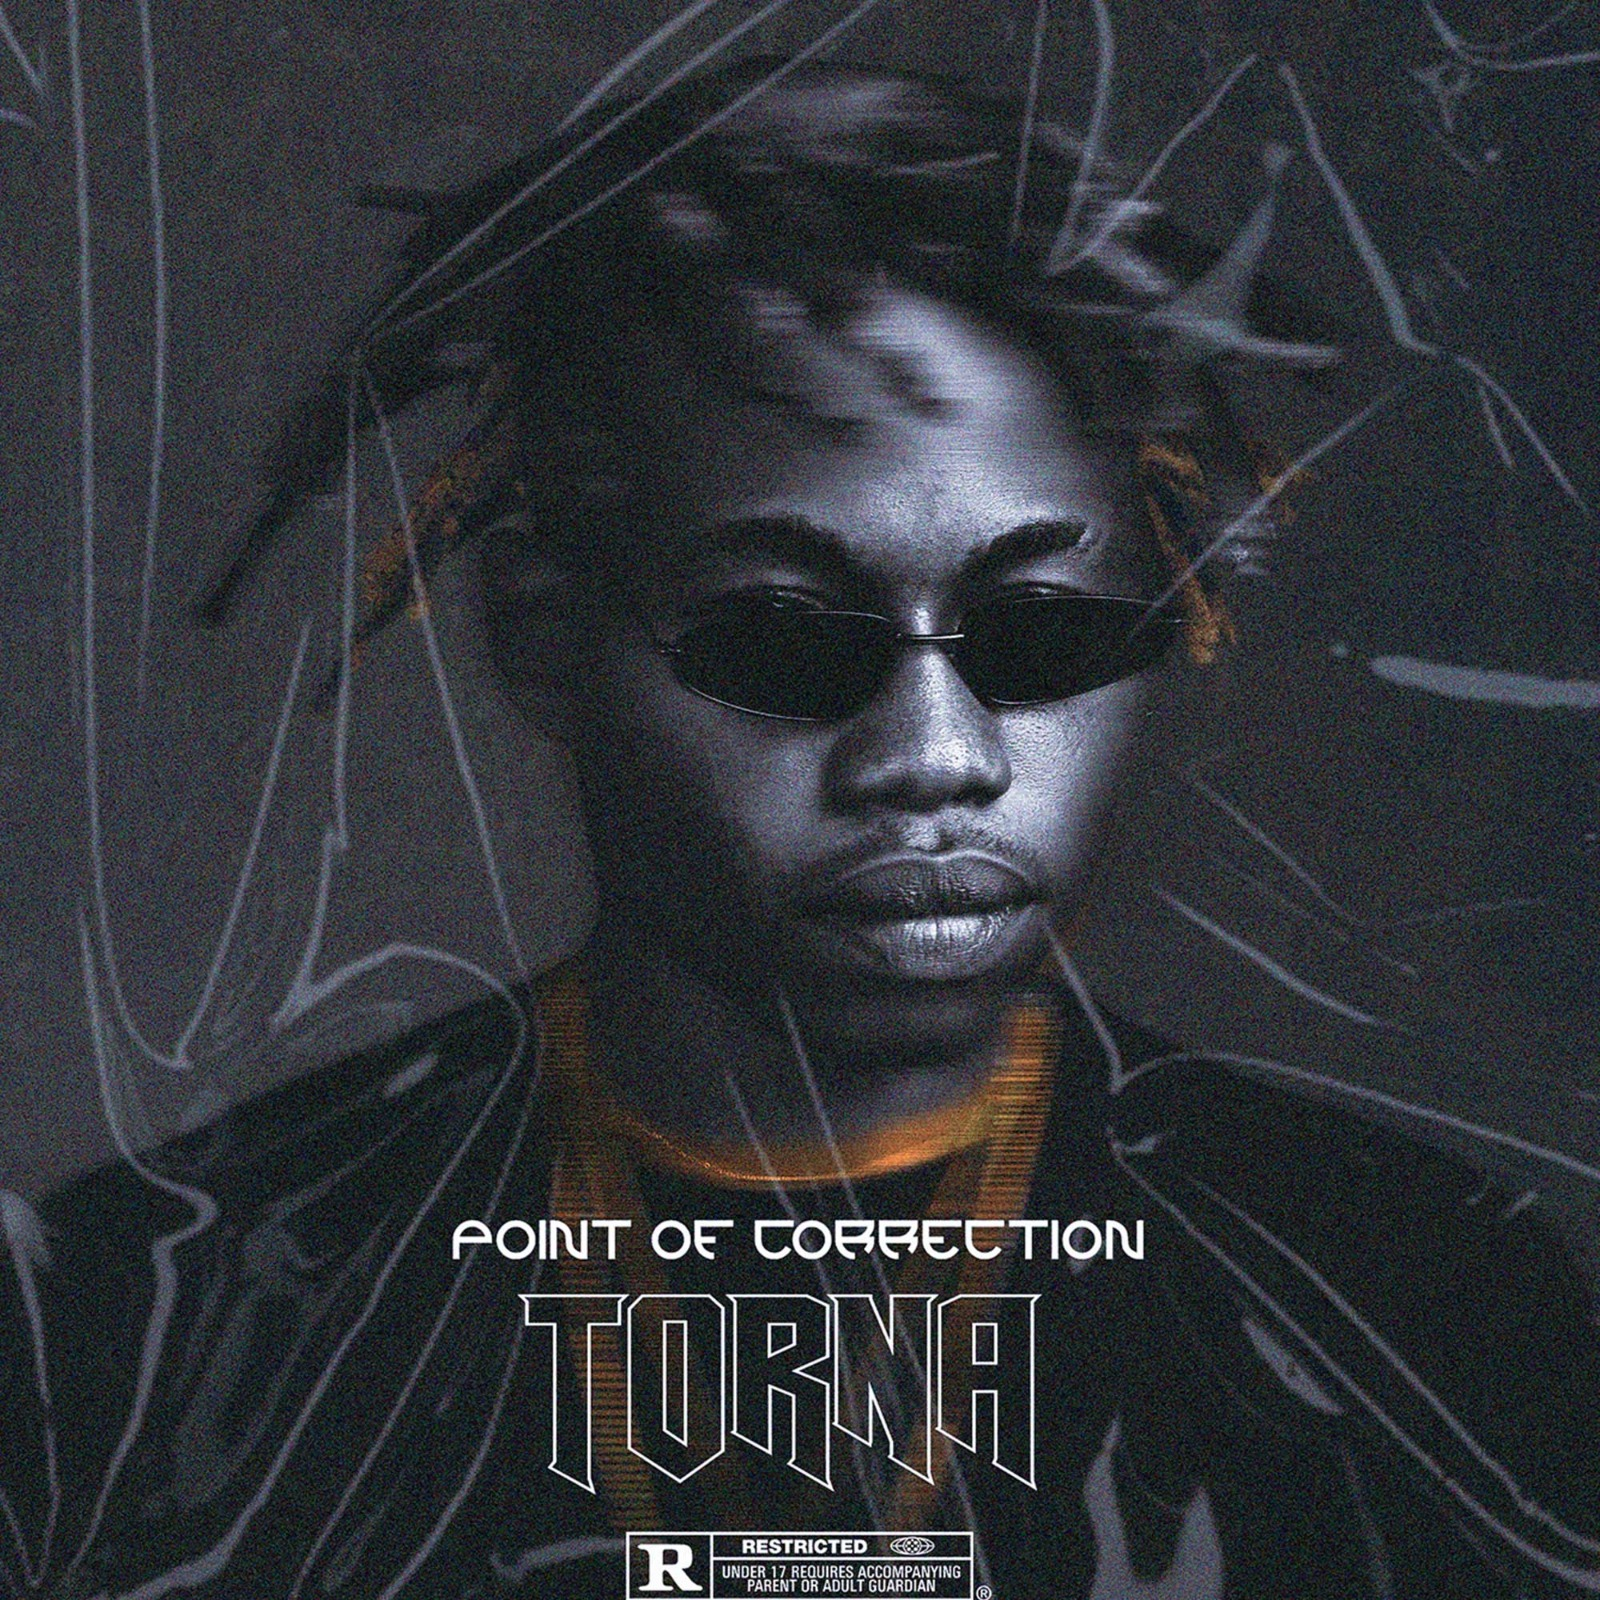 VIDEO: Torna - Point Of Correction (P.O.C)